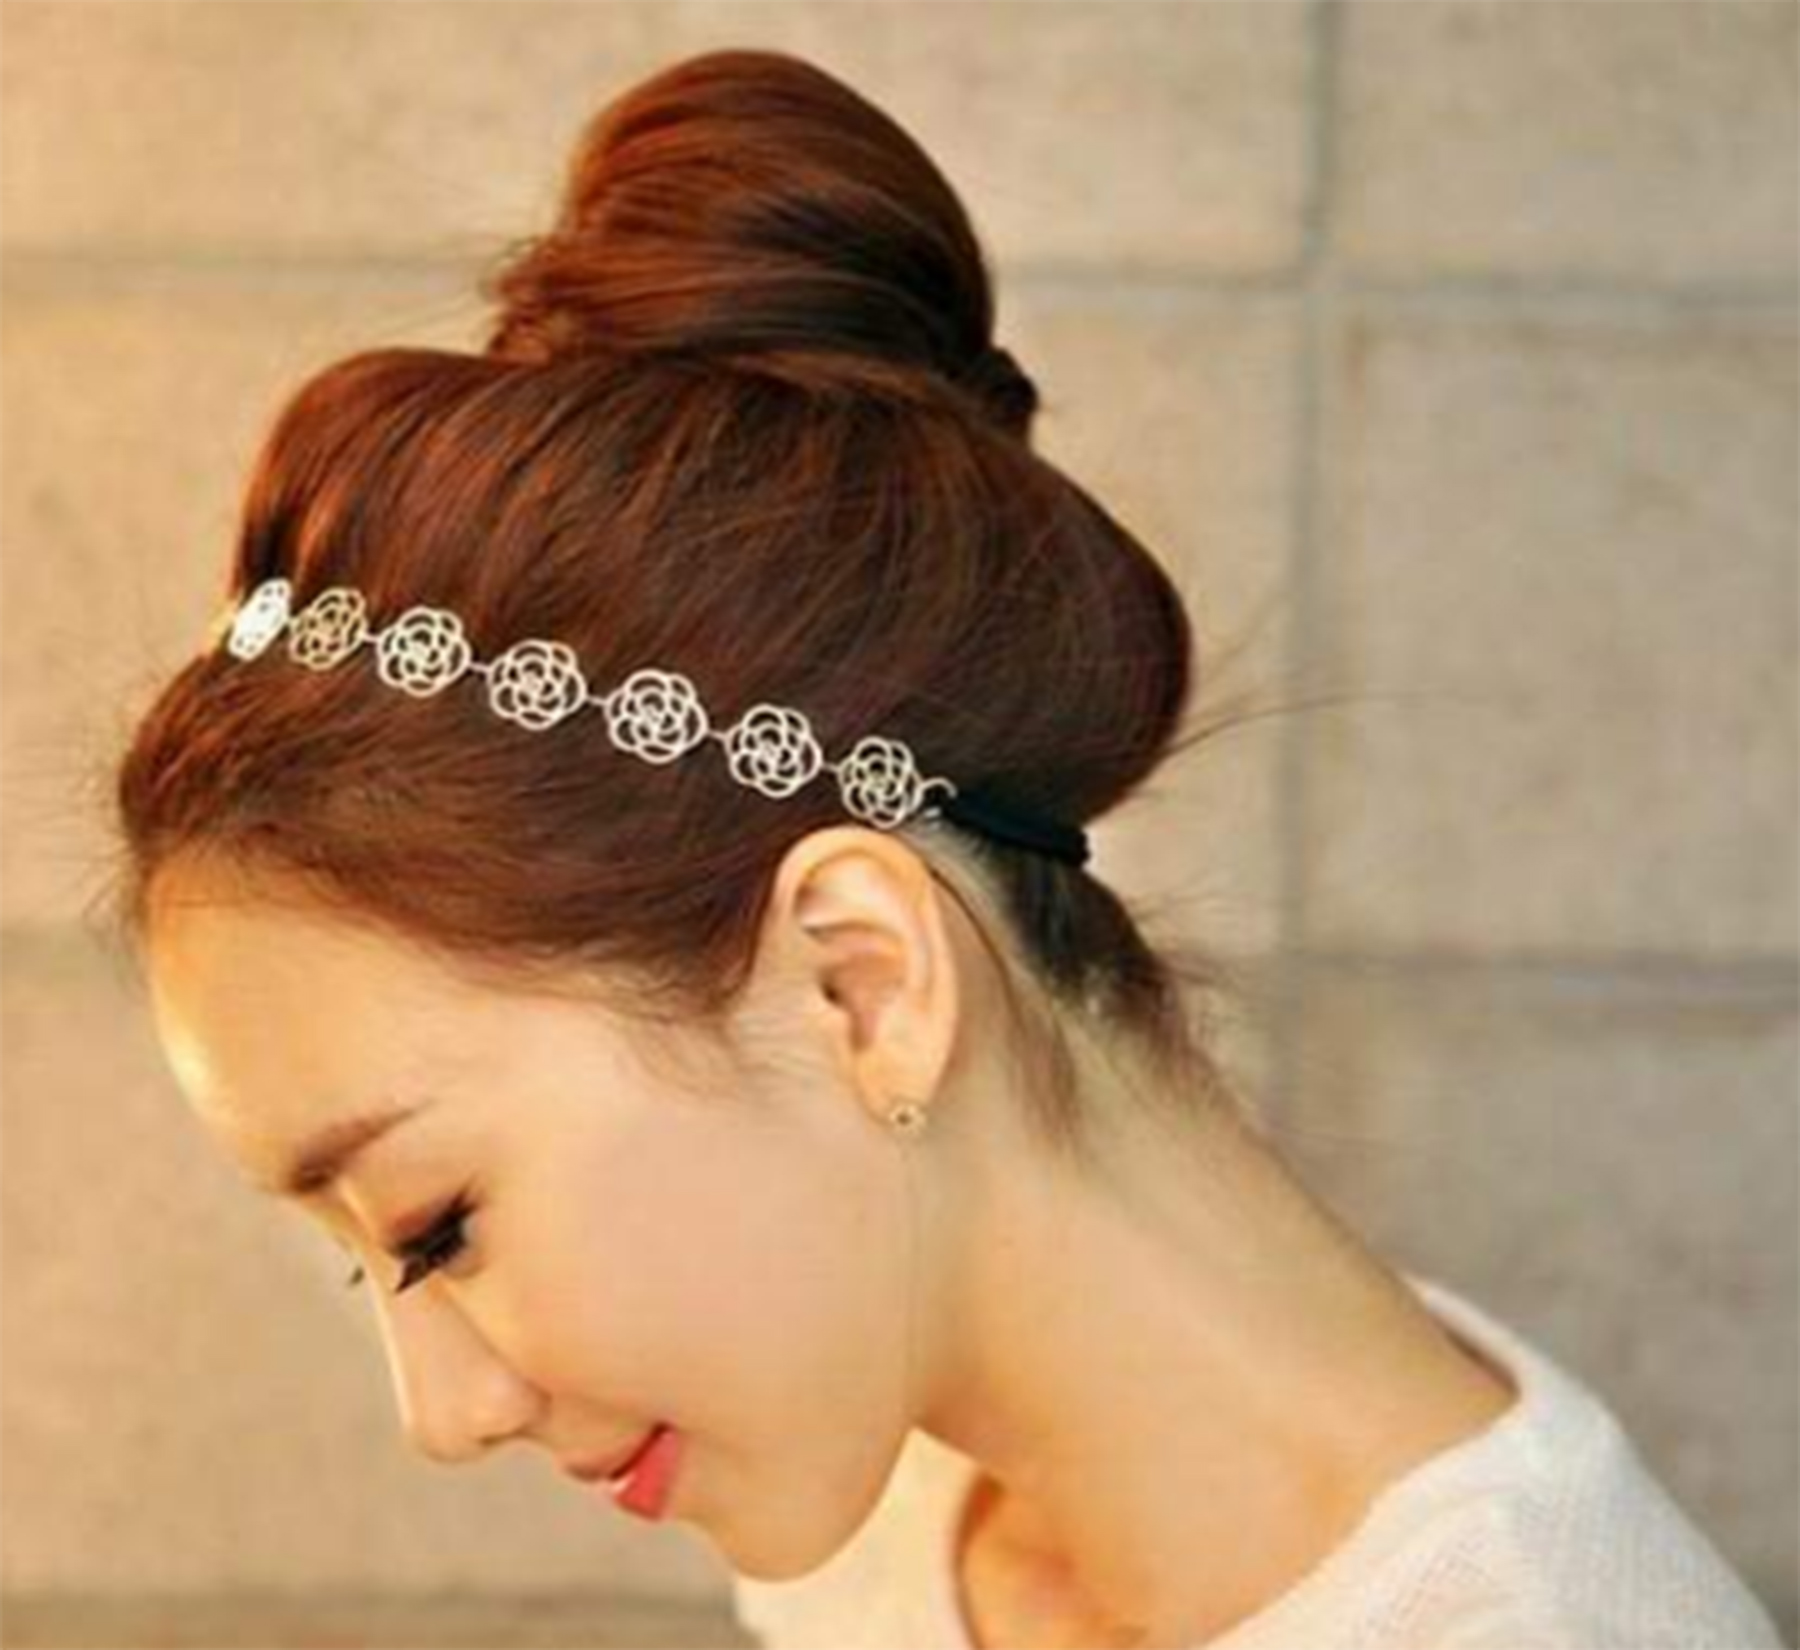 Hollow-Rose-Hair-Wear-7428.html